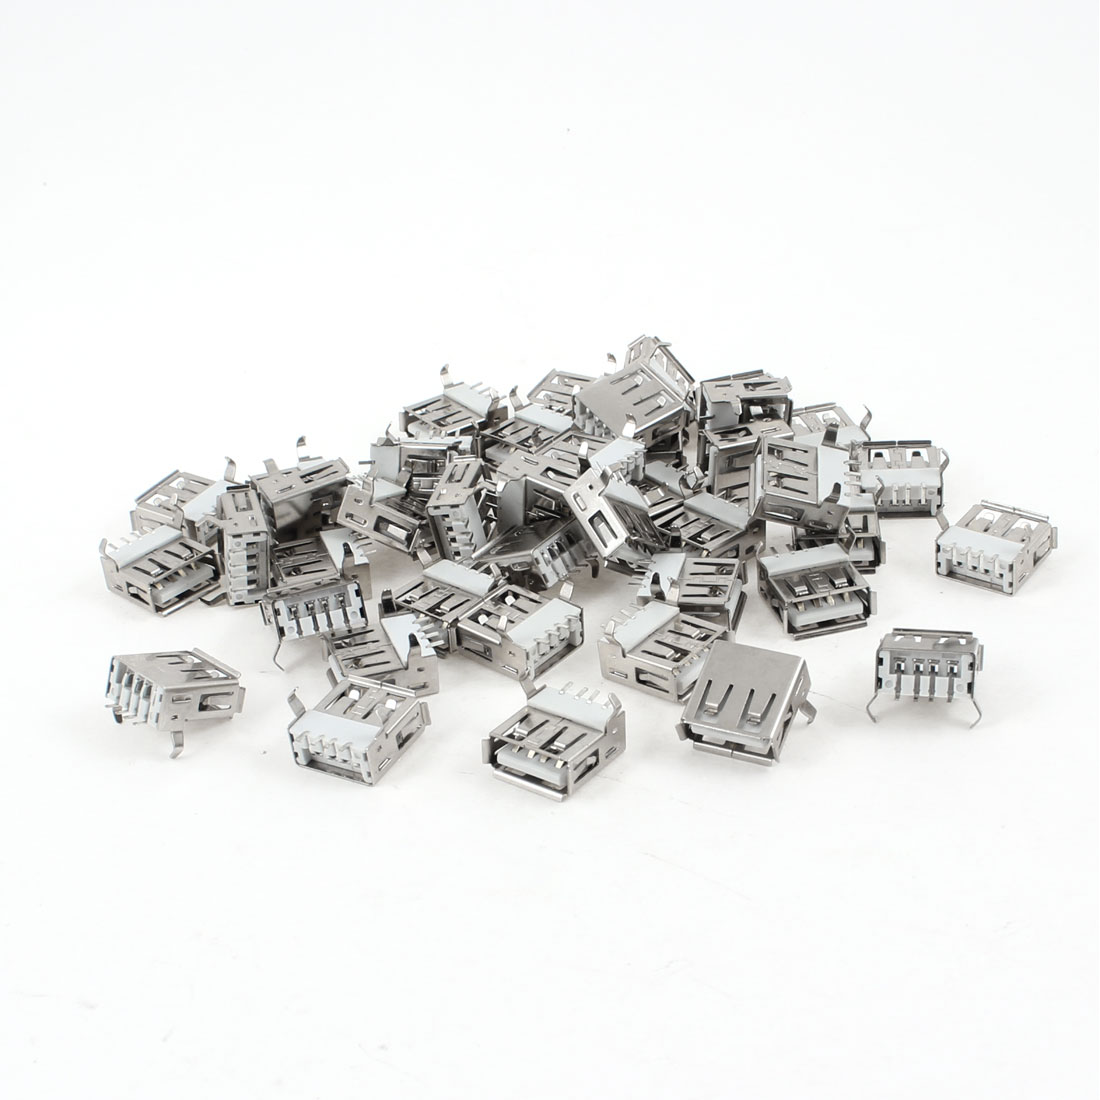 50 Pcs Shielded USB Type A 180 Degree 4-Pin SMD Female Jack Socket